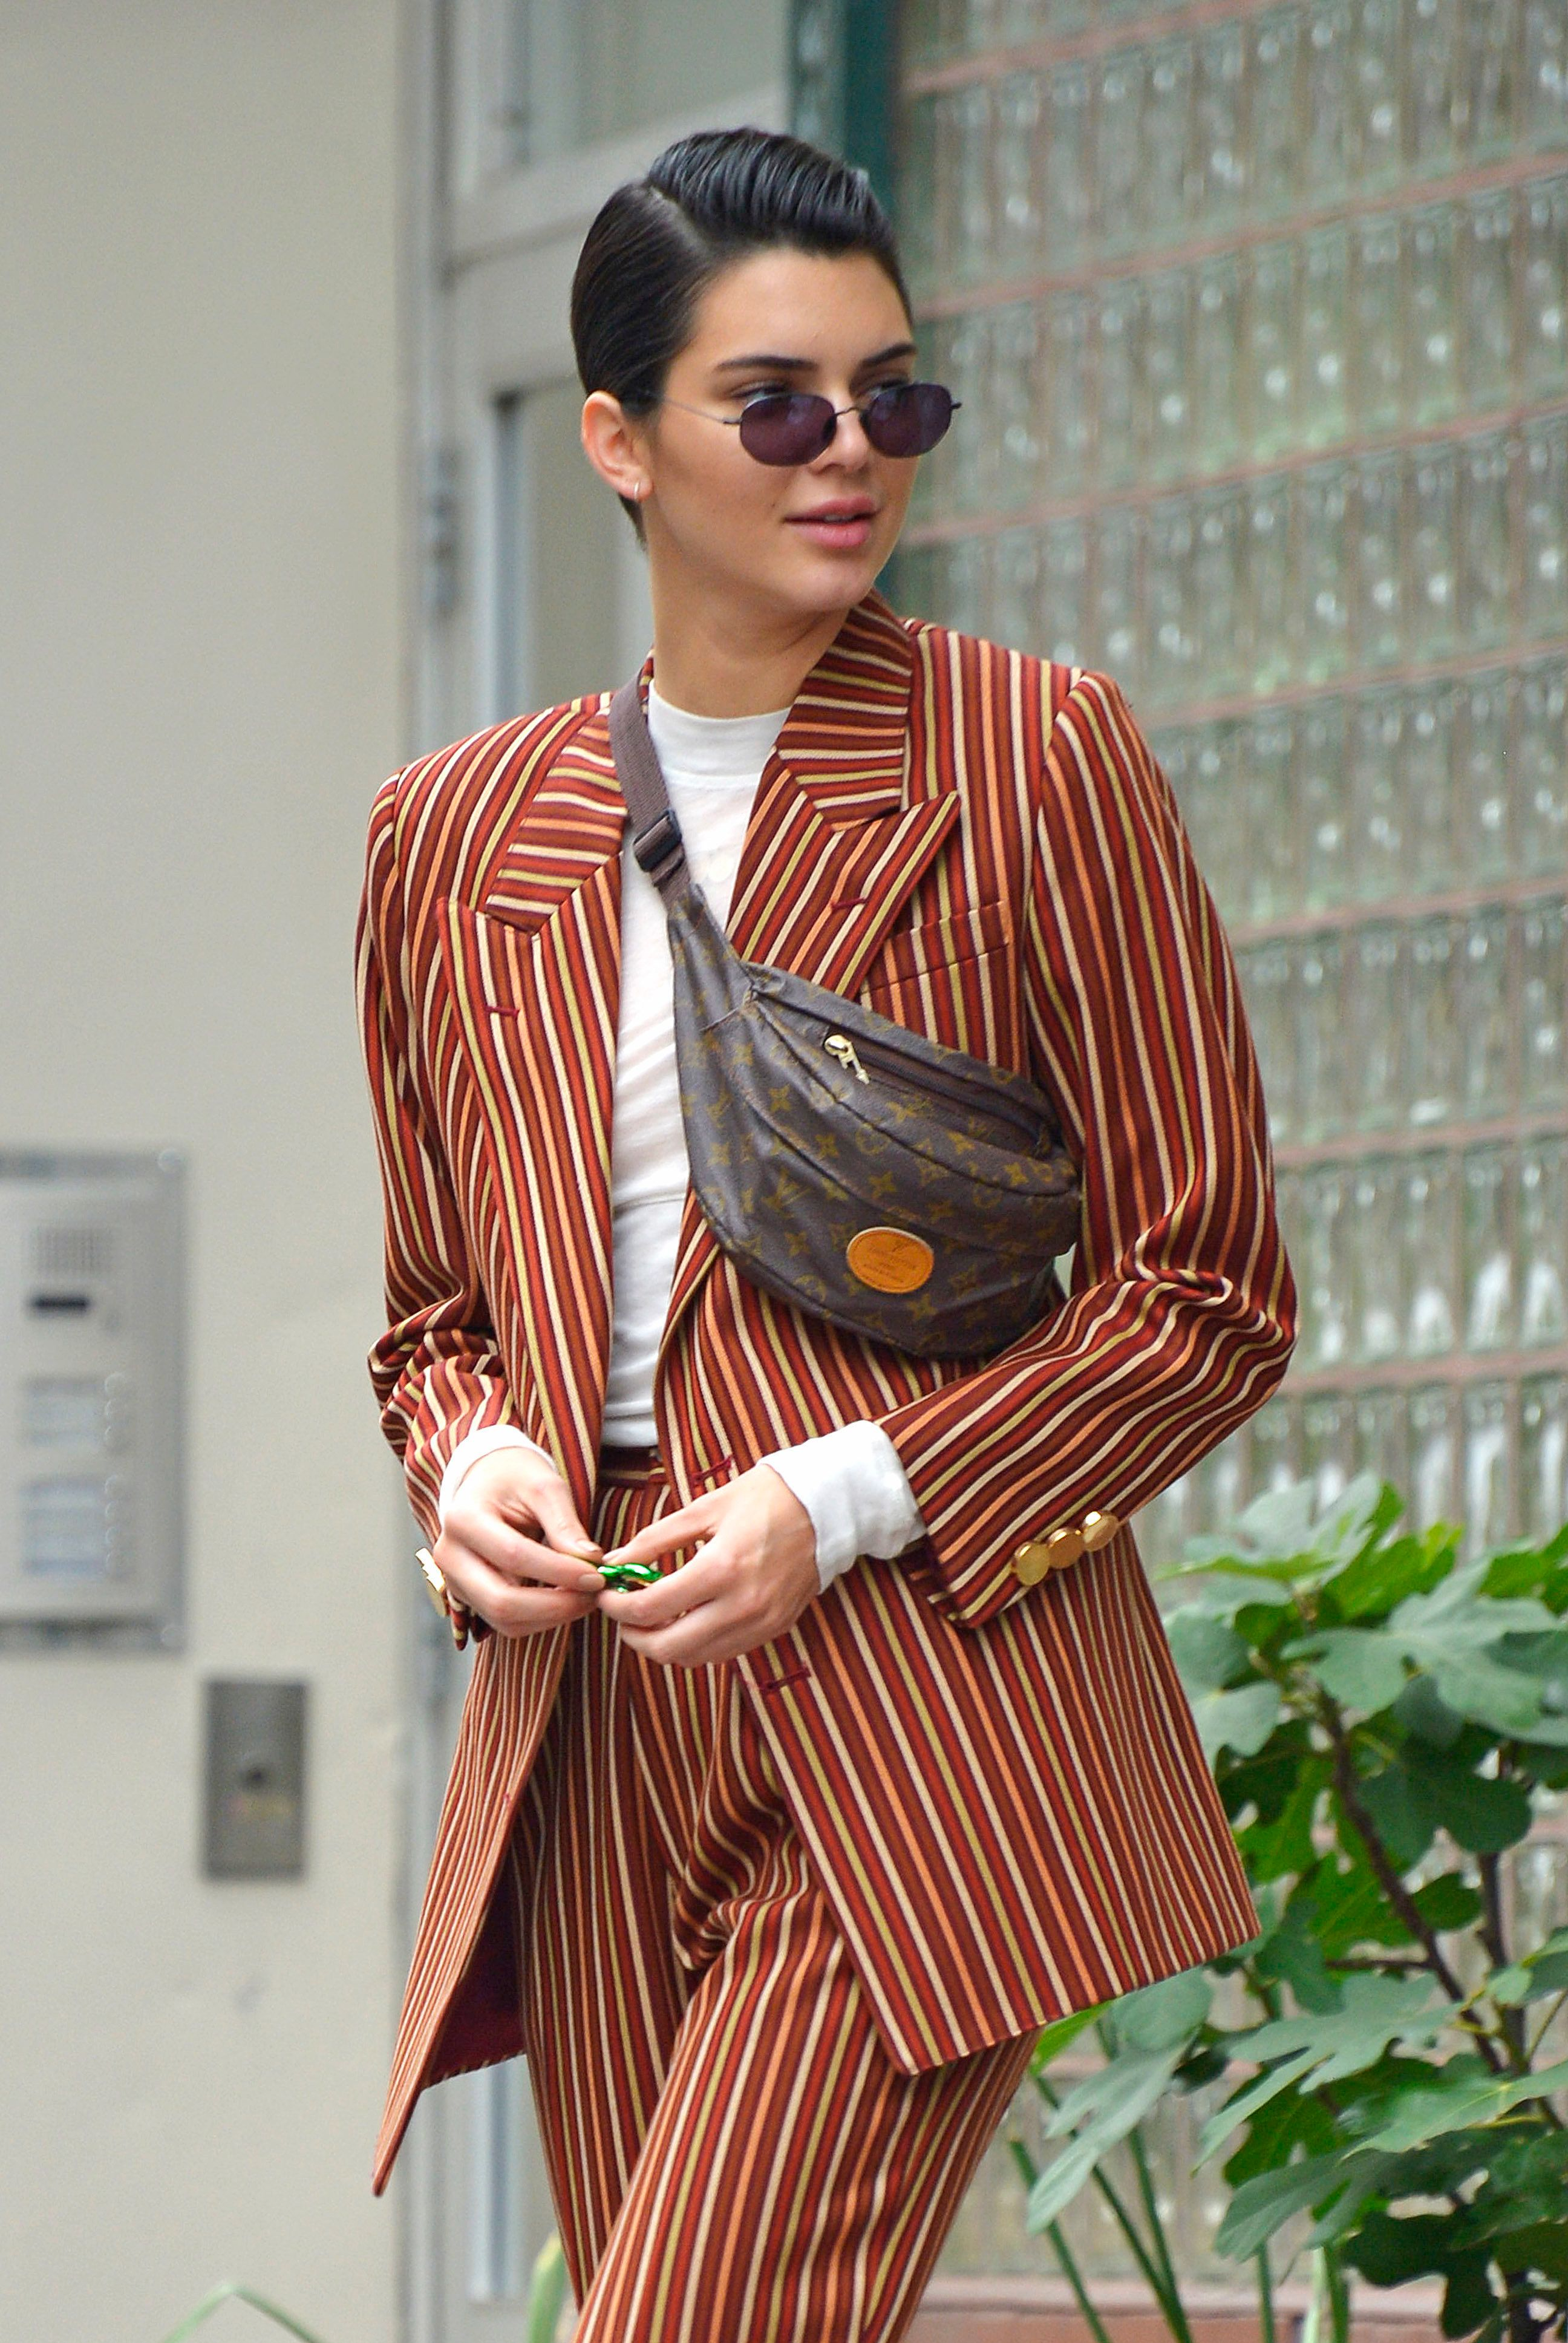 Kendall Jenner wears a modern brown striped suit with white sneakers and her fanny pack while out window shopping at Phillip